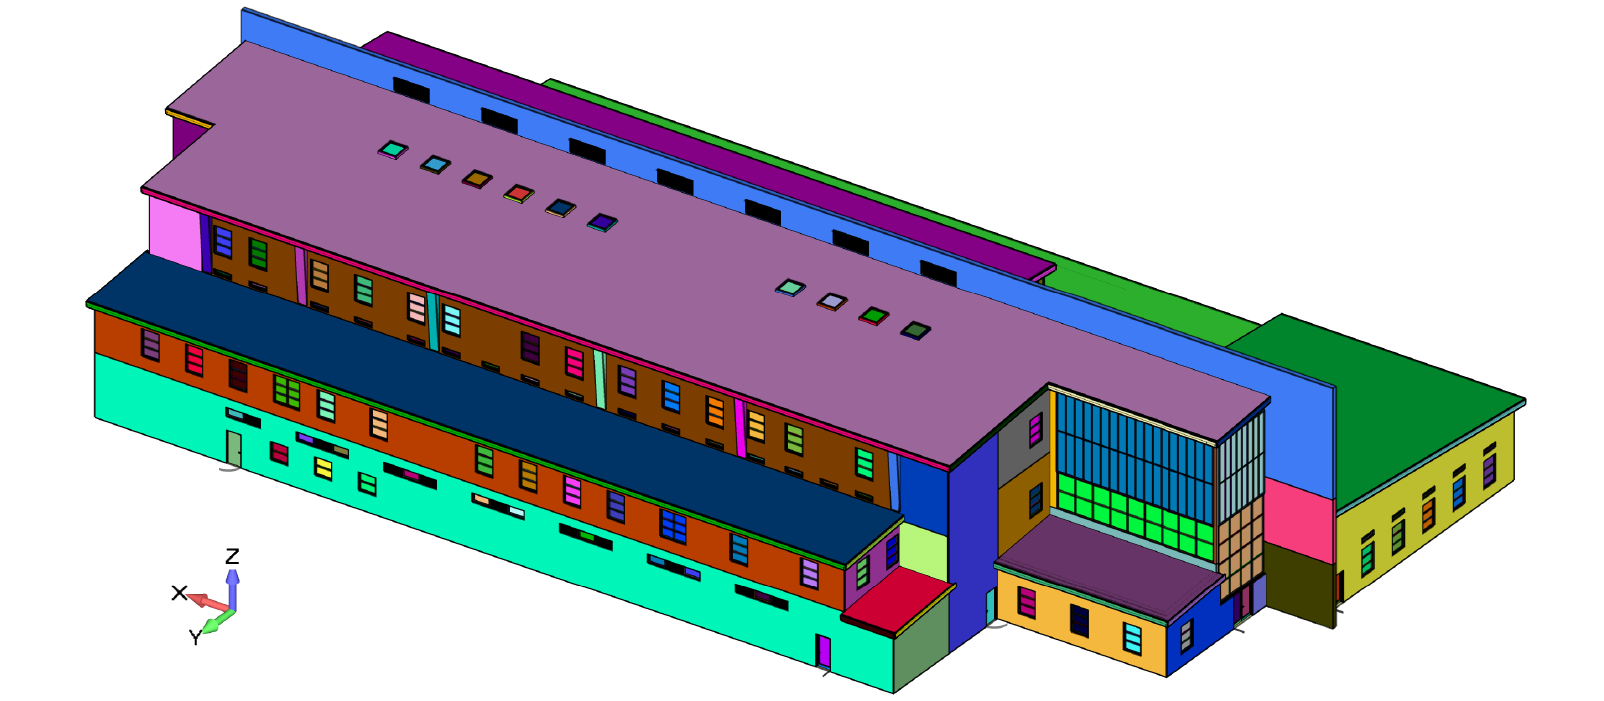 CAD Geometry of the LEED designed multipurpose building used as the starting point for the CFD simulation model